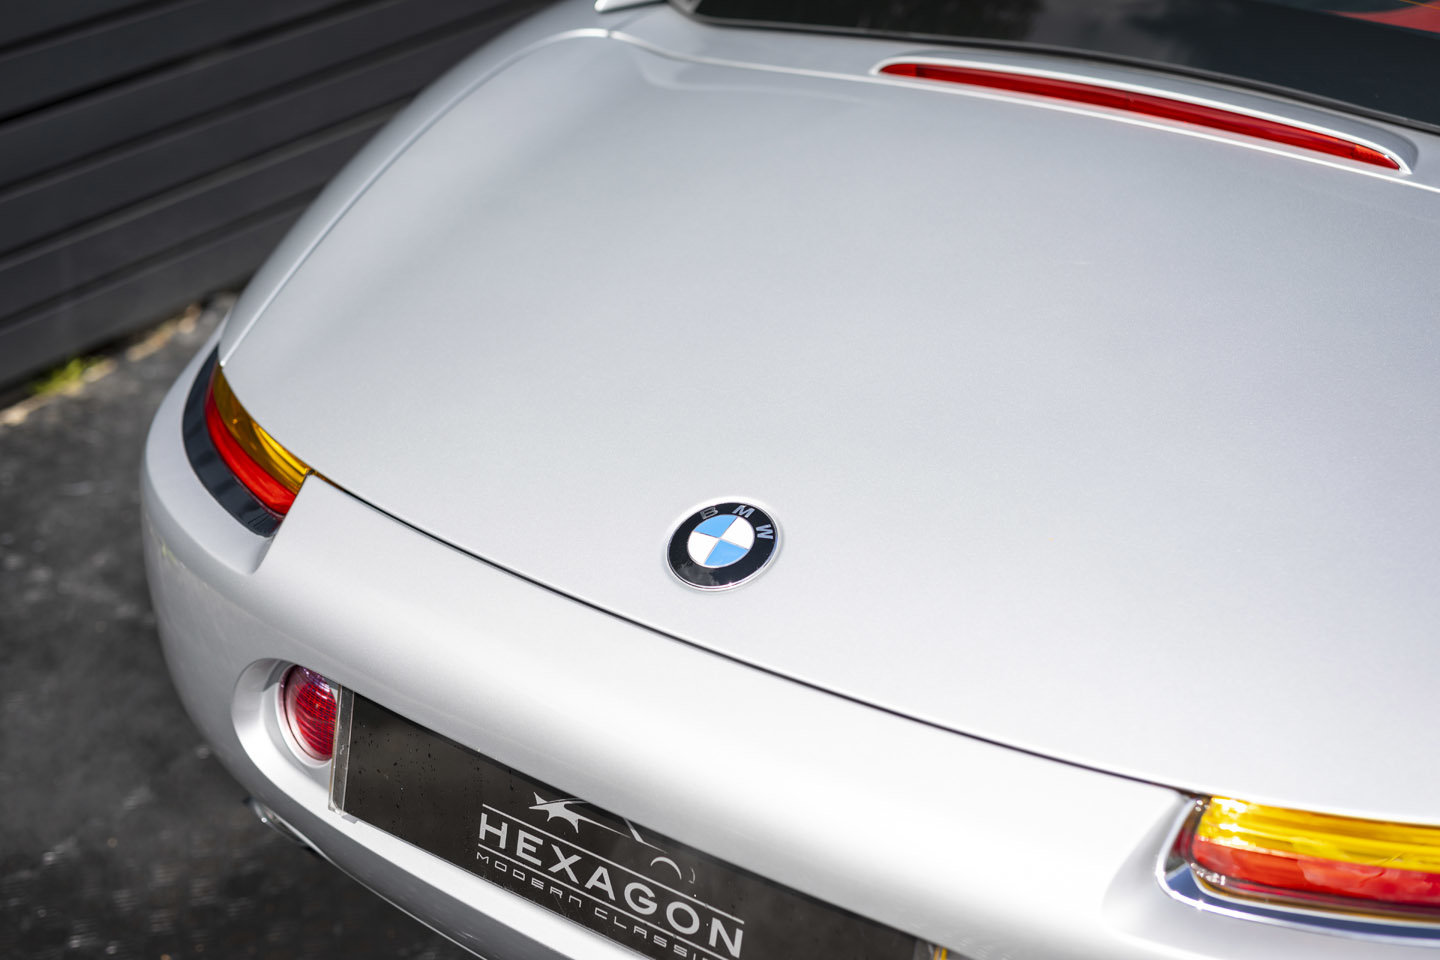 2001 BMW Z8 Roadster ONLY 10500 MILES UK CAR For Sale (picture 10 of 22)